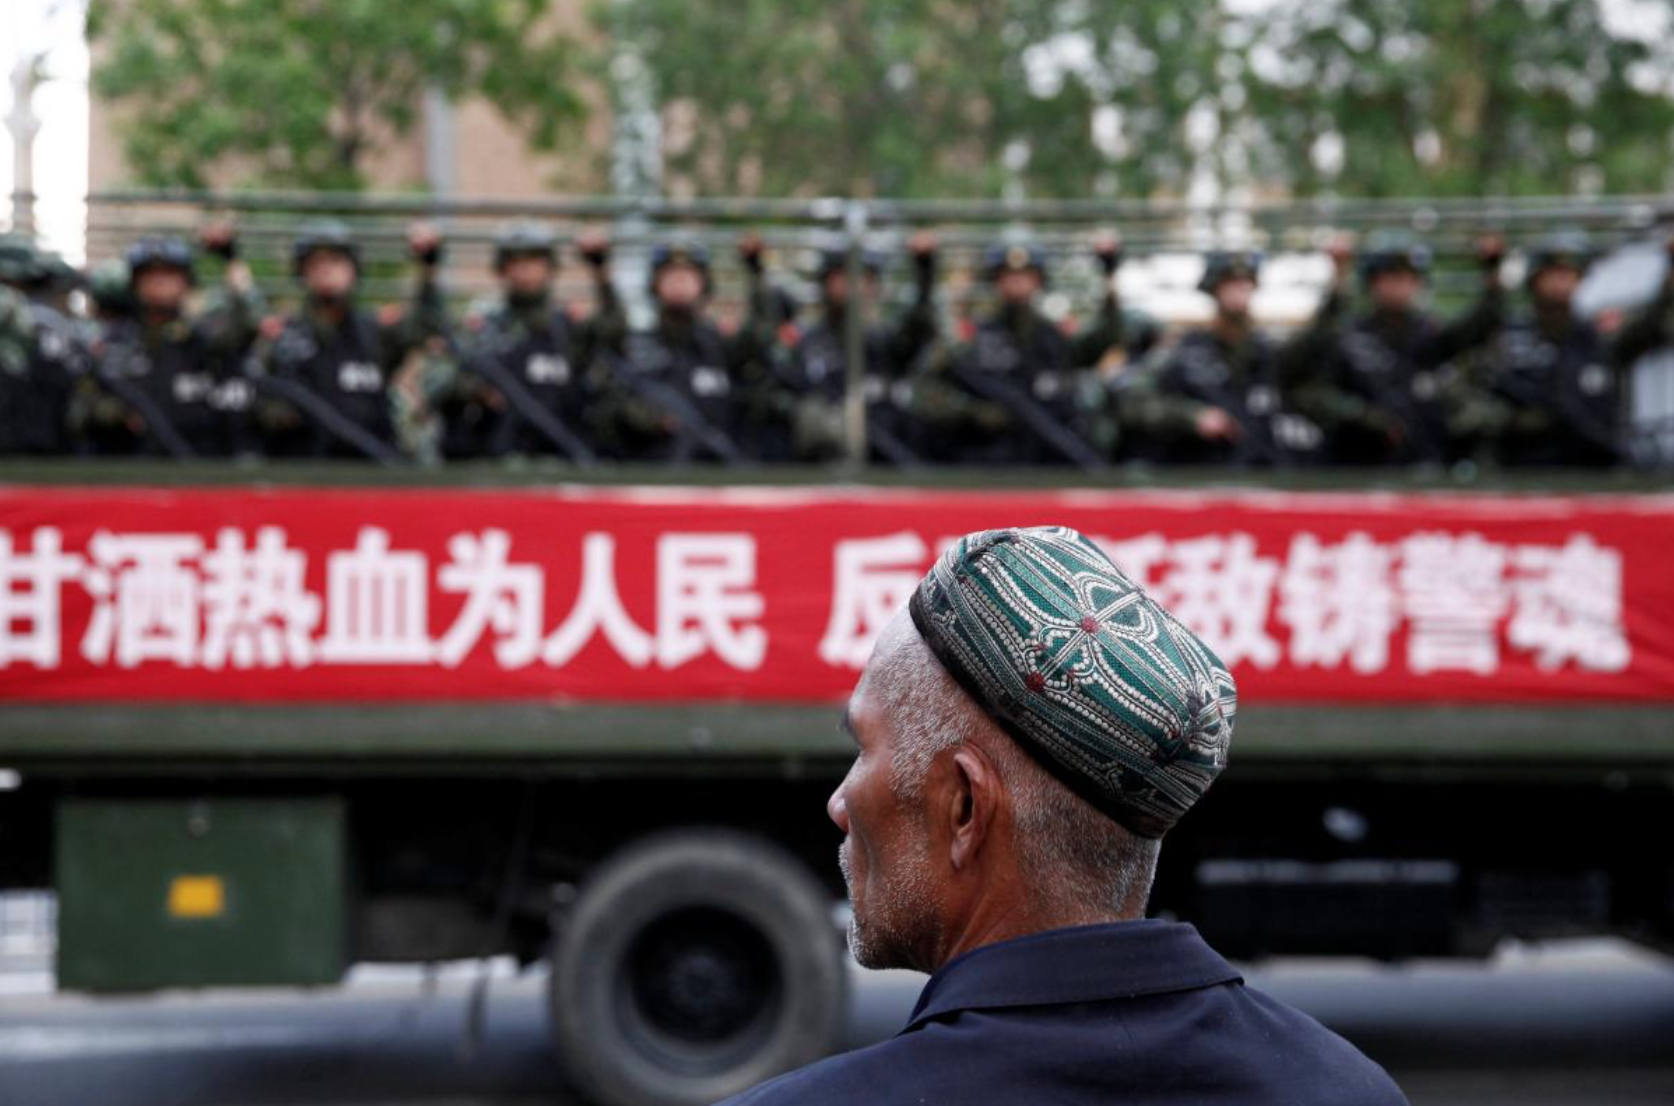 China mounts publicity campaign to counter criticism on Xinjiang